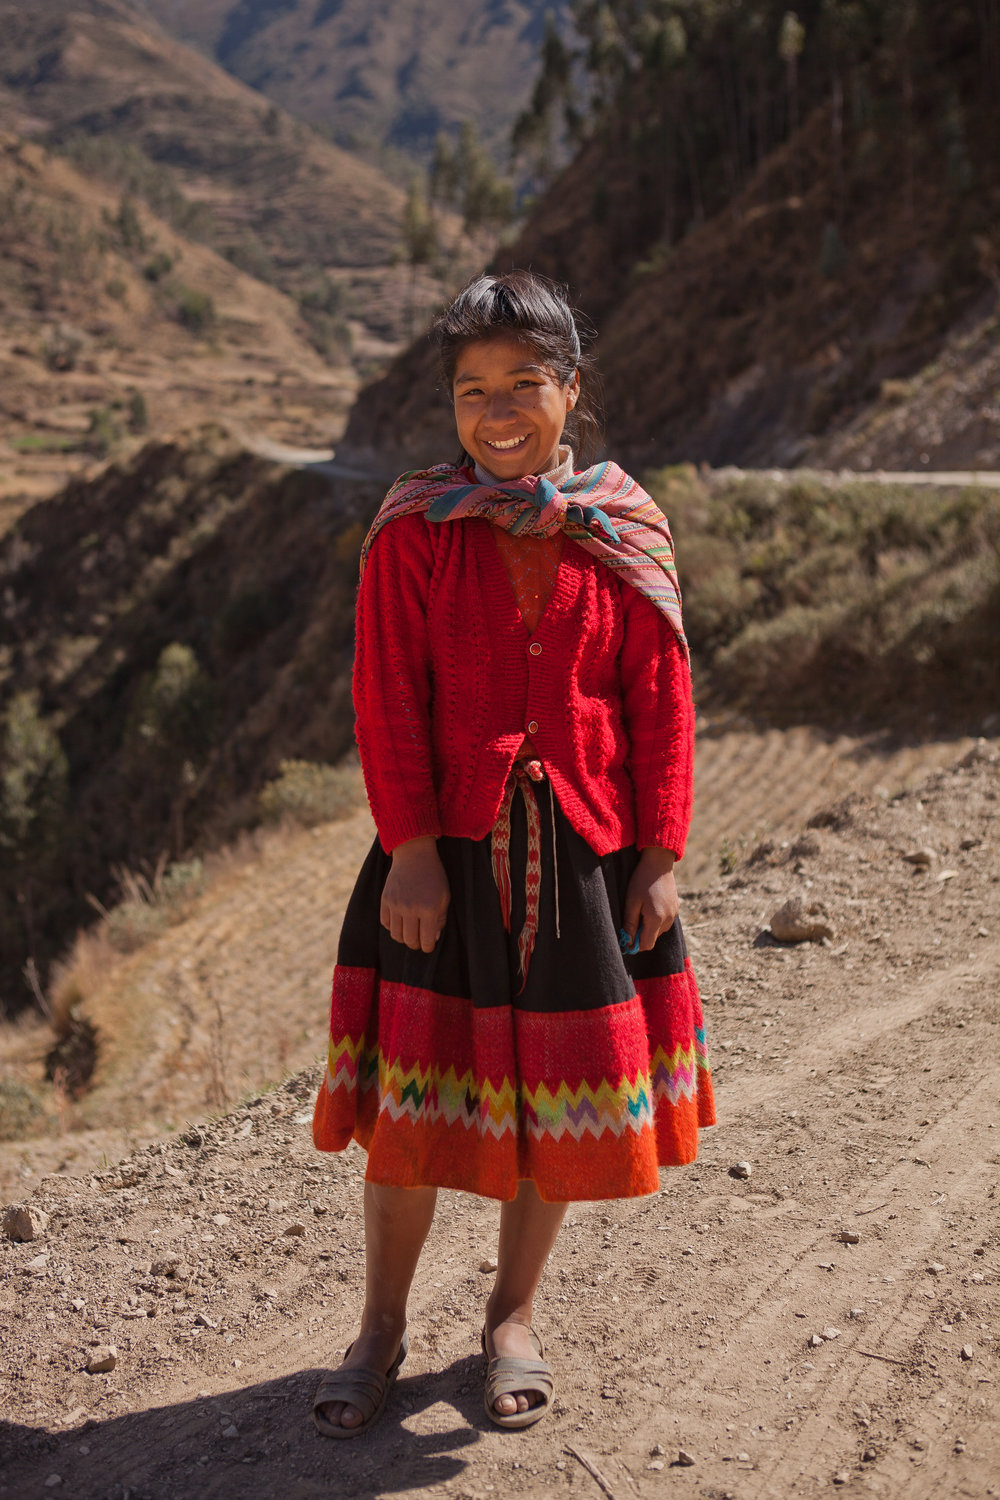 We ran into Elizabeth on her way back home from helping her mom at the market. Elizabeth lives in a rural mountain community, and she lives at the dorm during the week to make her commute to school possible.